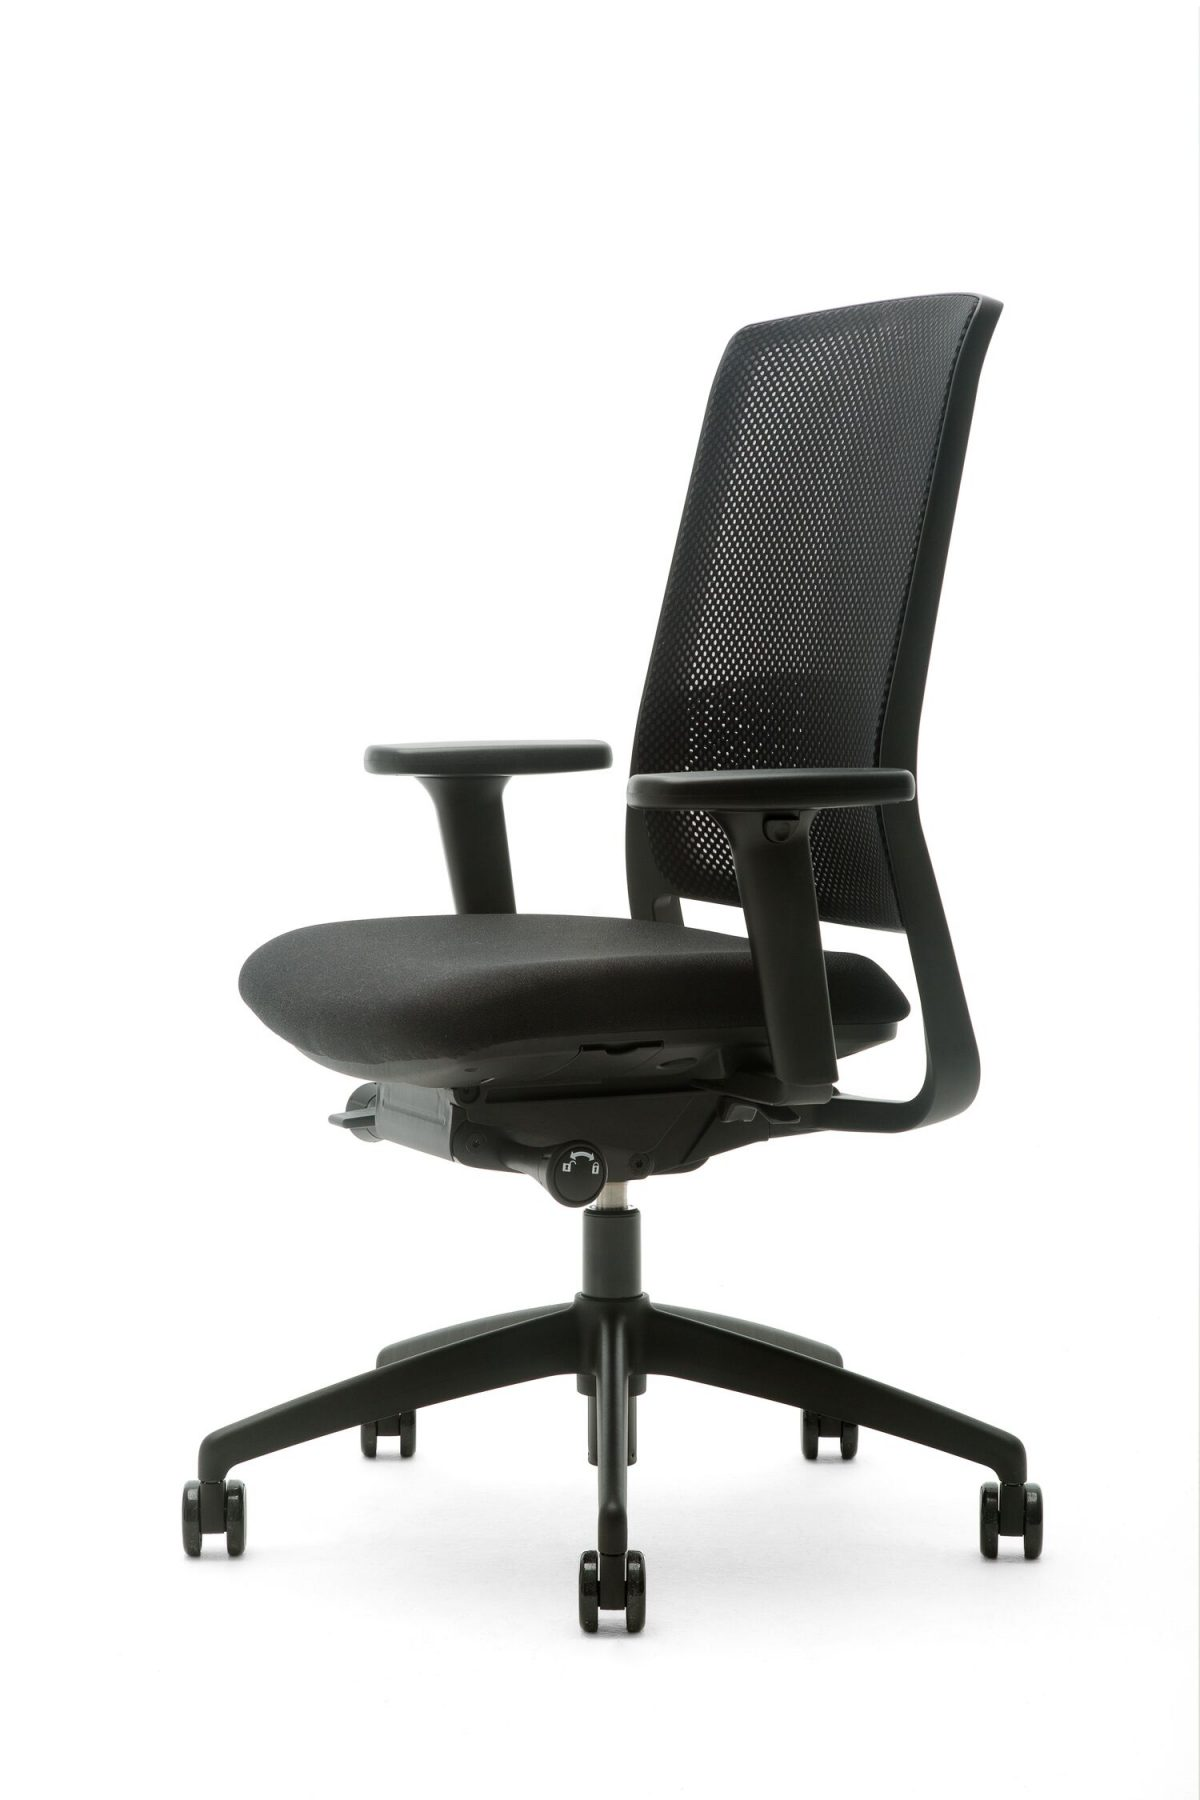 Gispen Zinn Smart Bureaustoel 35BK Office Chair Front Right View Zwart Voetkruis